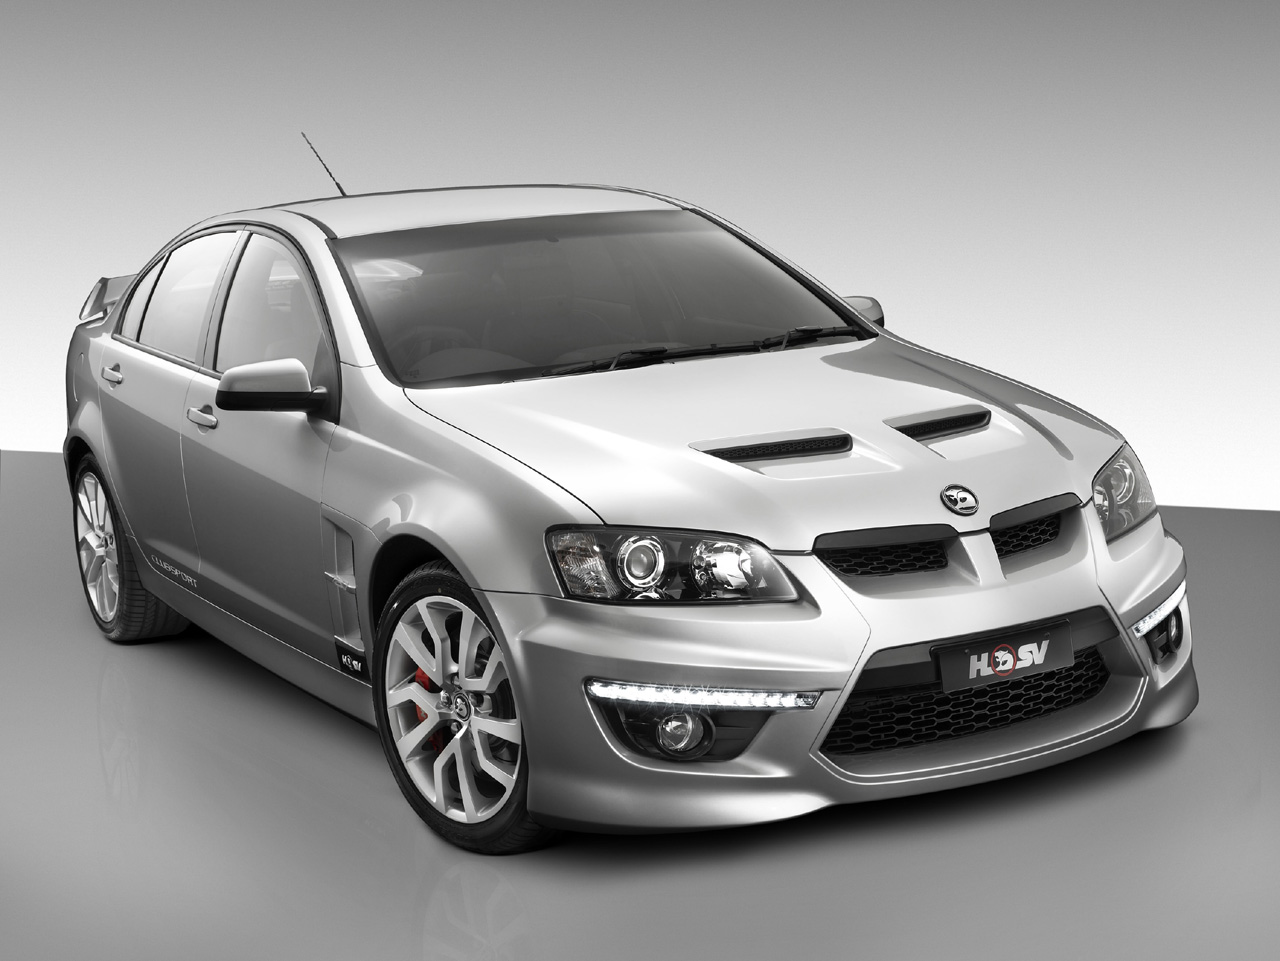 Jhp Any Details On New Hsv Front End Pontiac G8 Forum